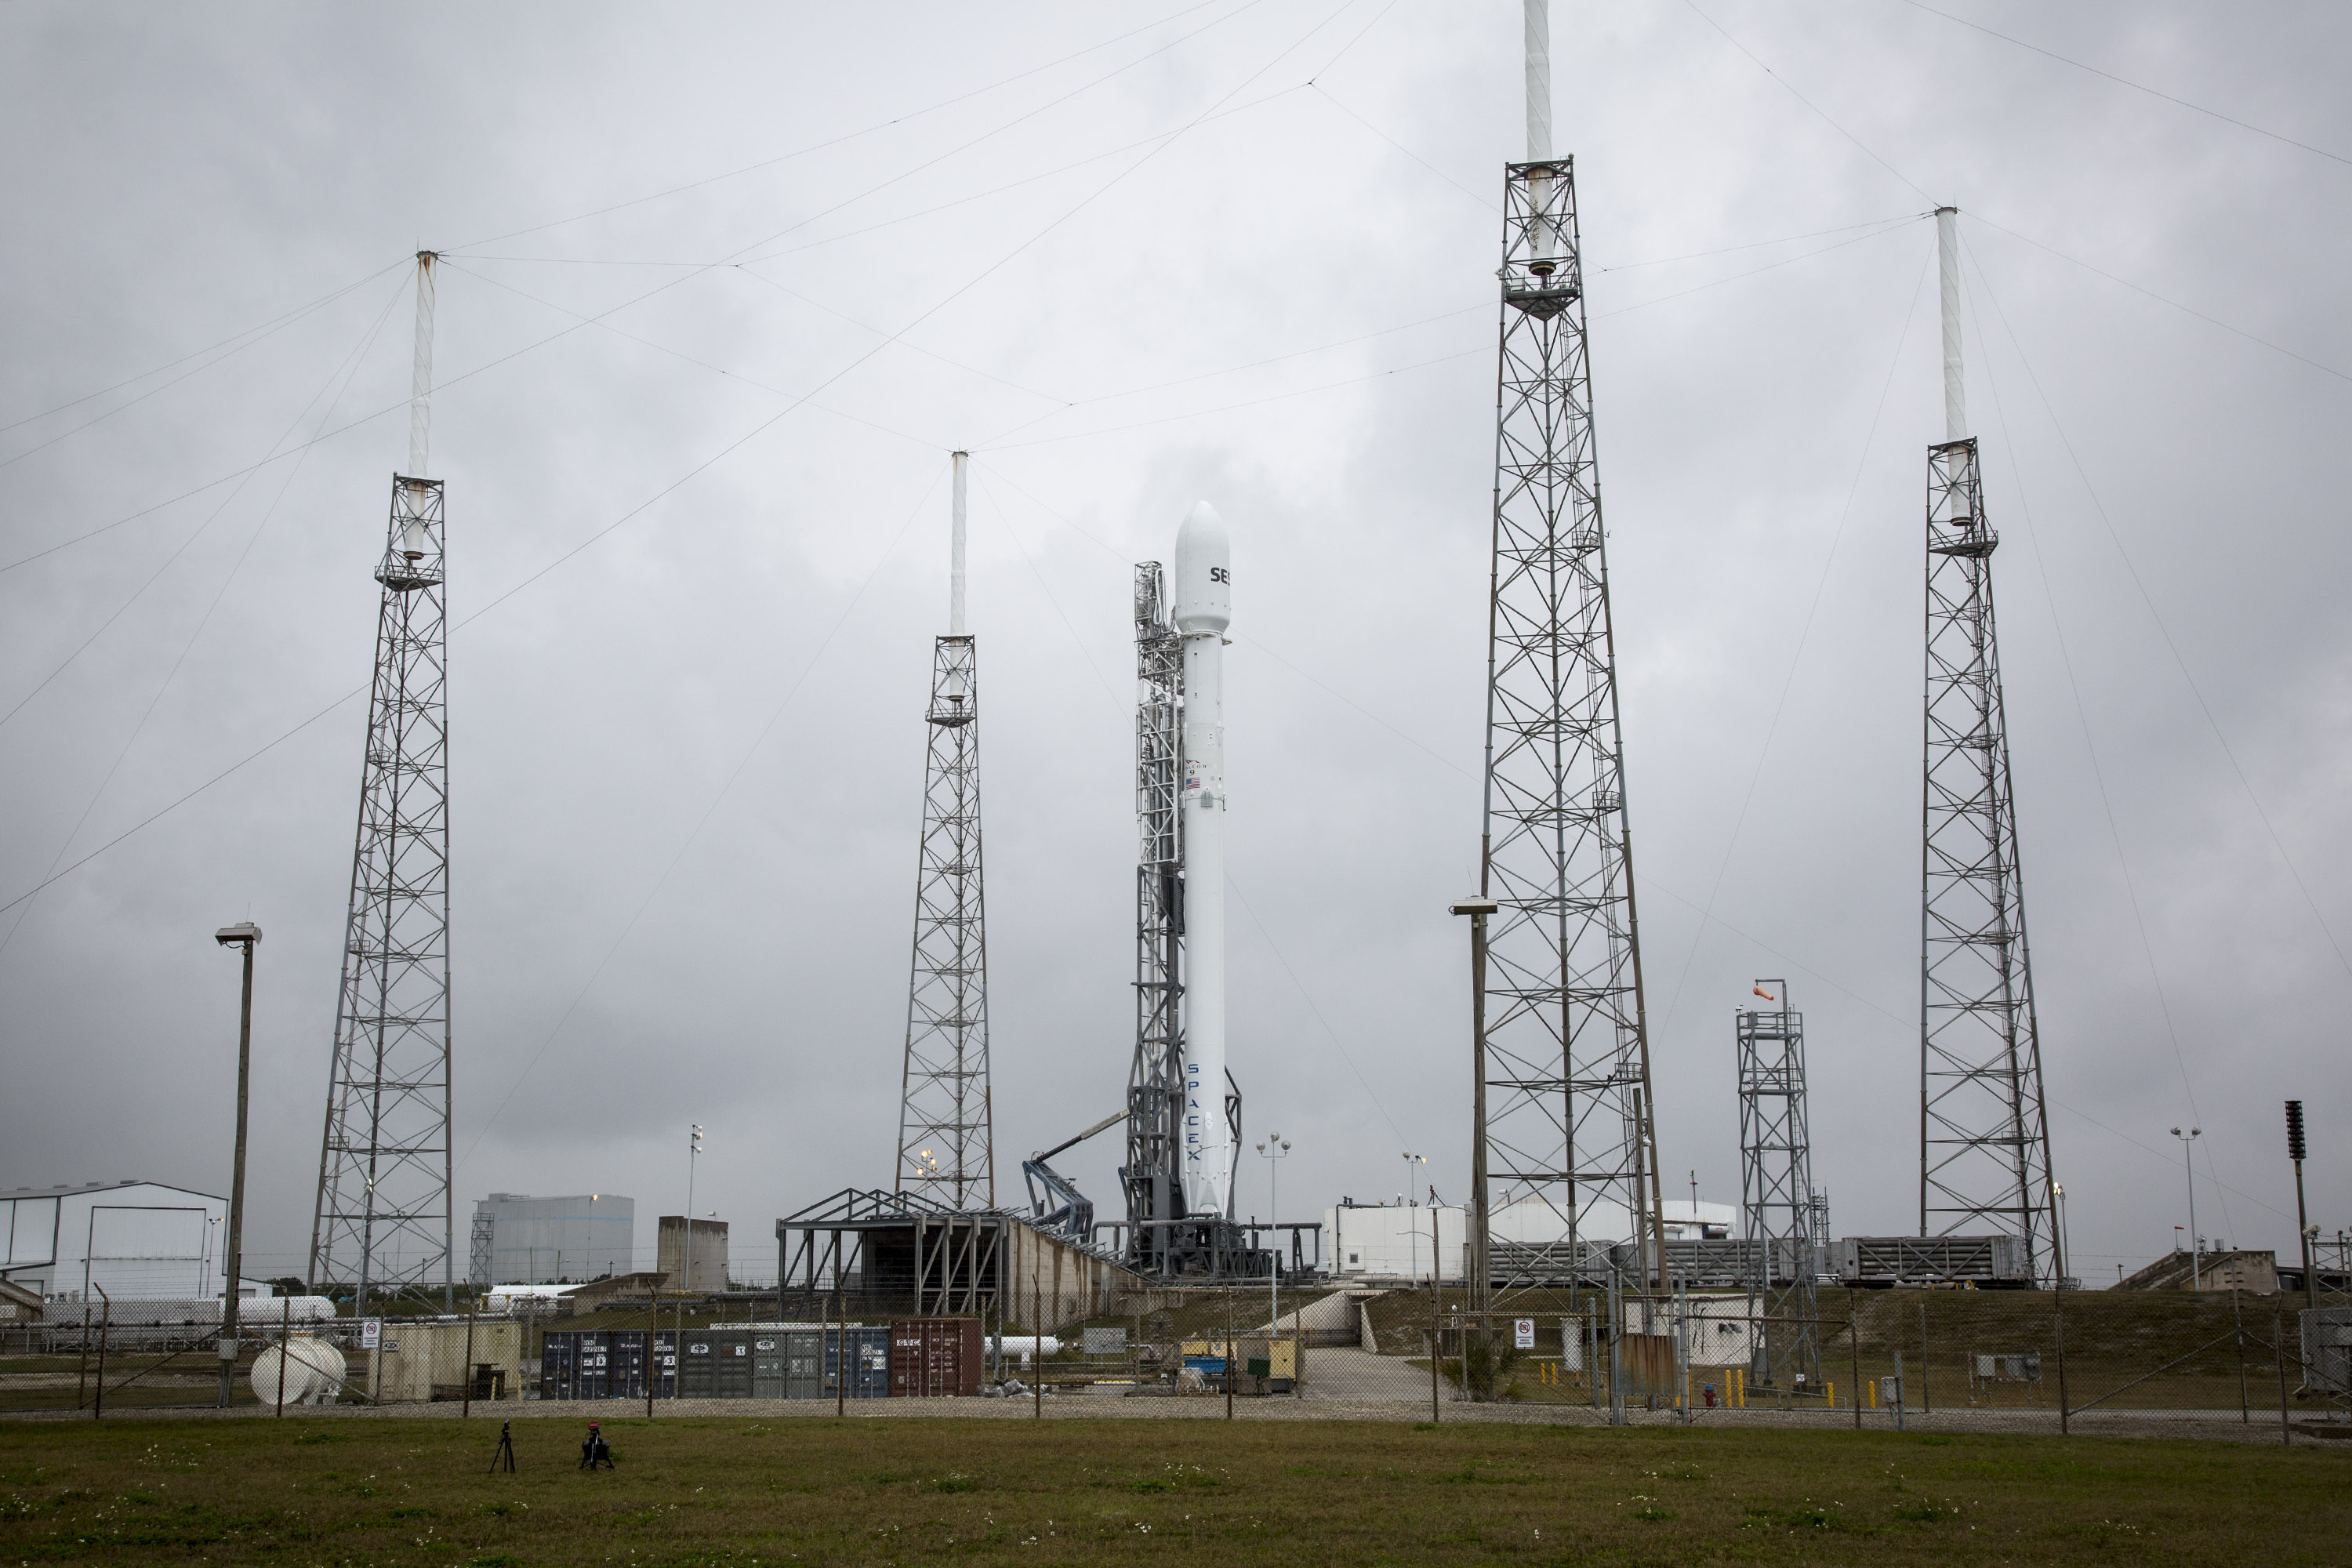 SpaceX lhas launchedcompletely recycled spacecraft